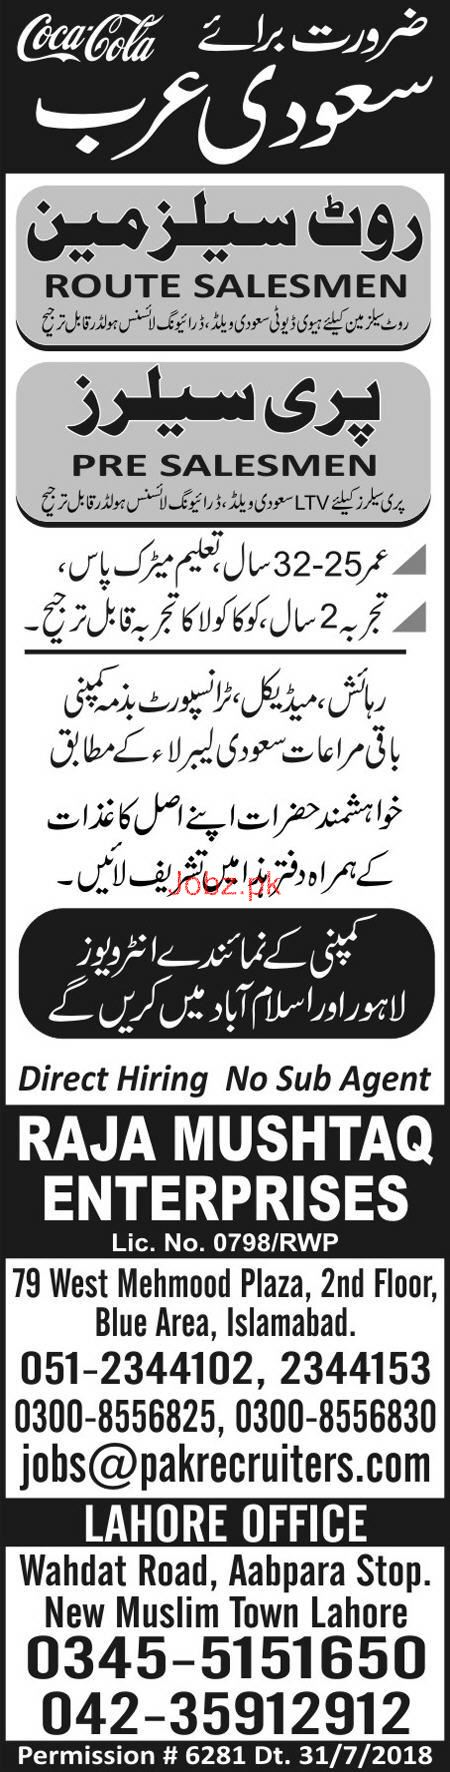 Route Salesmen and Pre Salesmen Job Opportunity